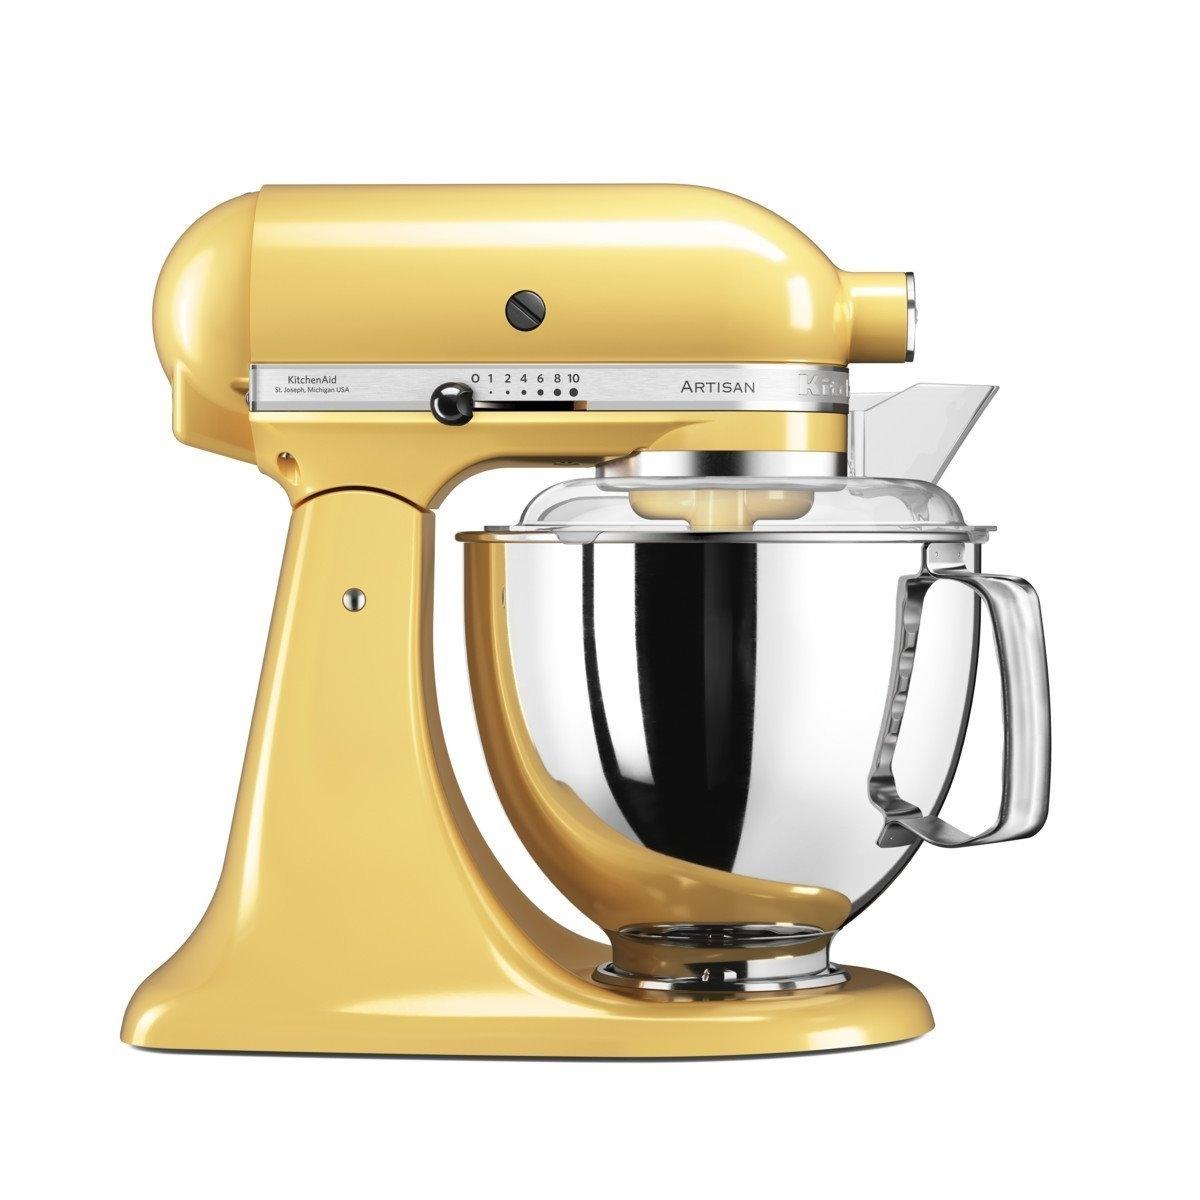 Mixer Cu Bol Artisan Elegance 5ksm175psemy, 4,8 L, Yellow, 300w, Kitchenaid